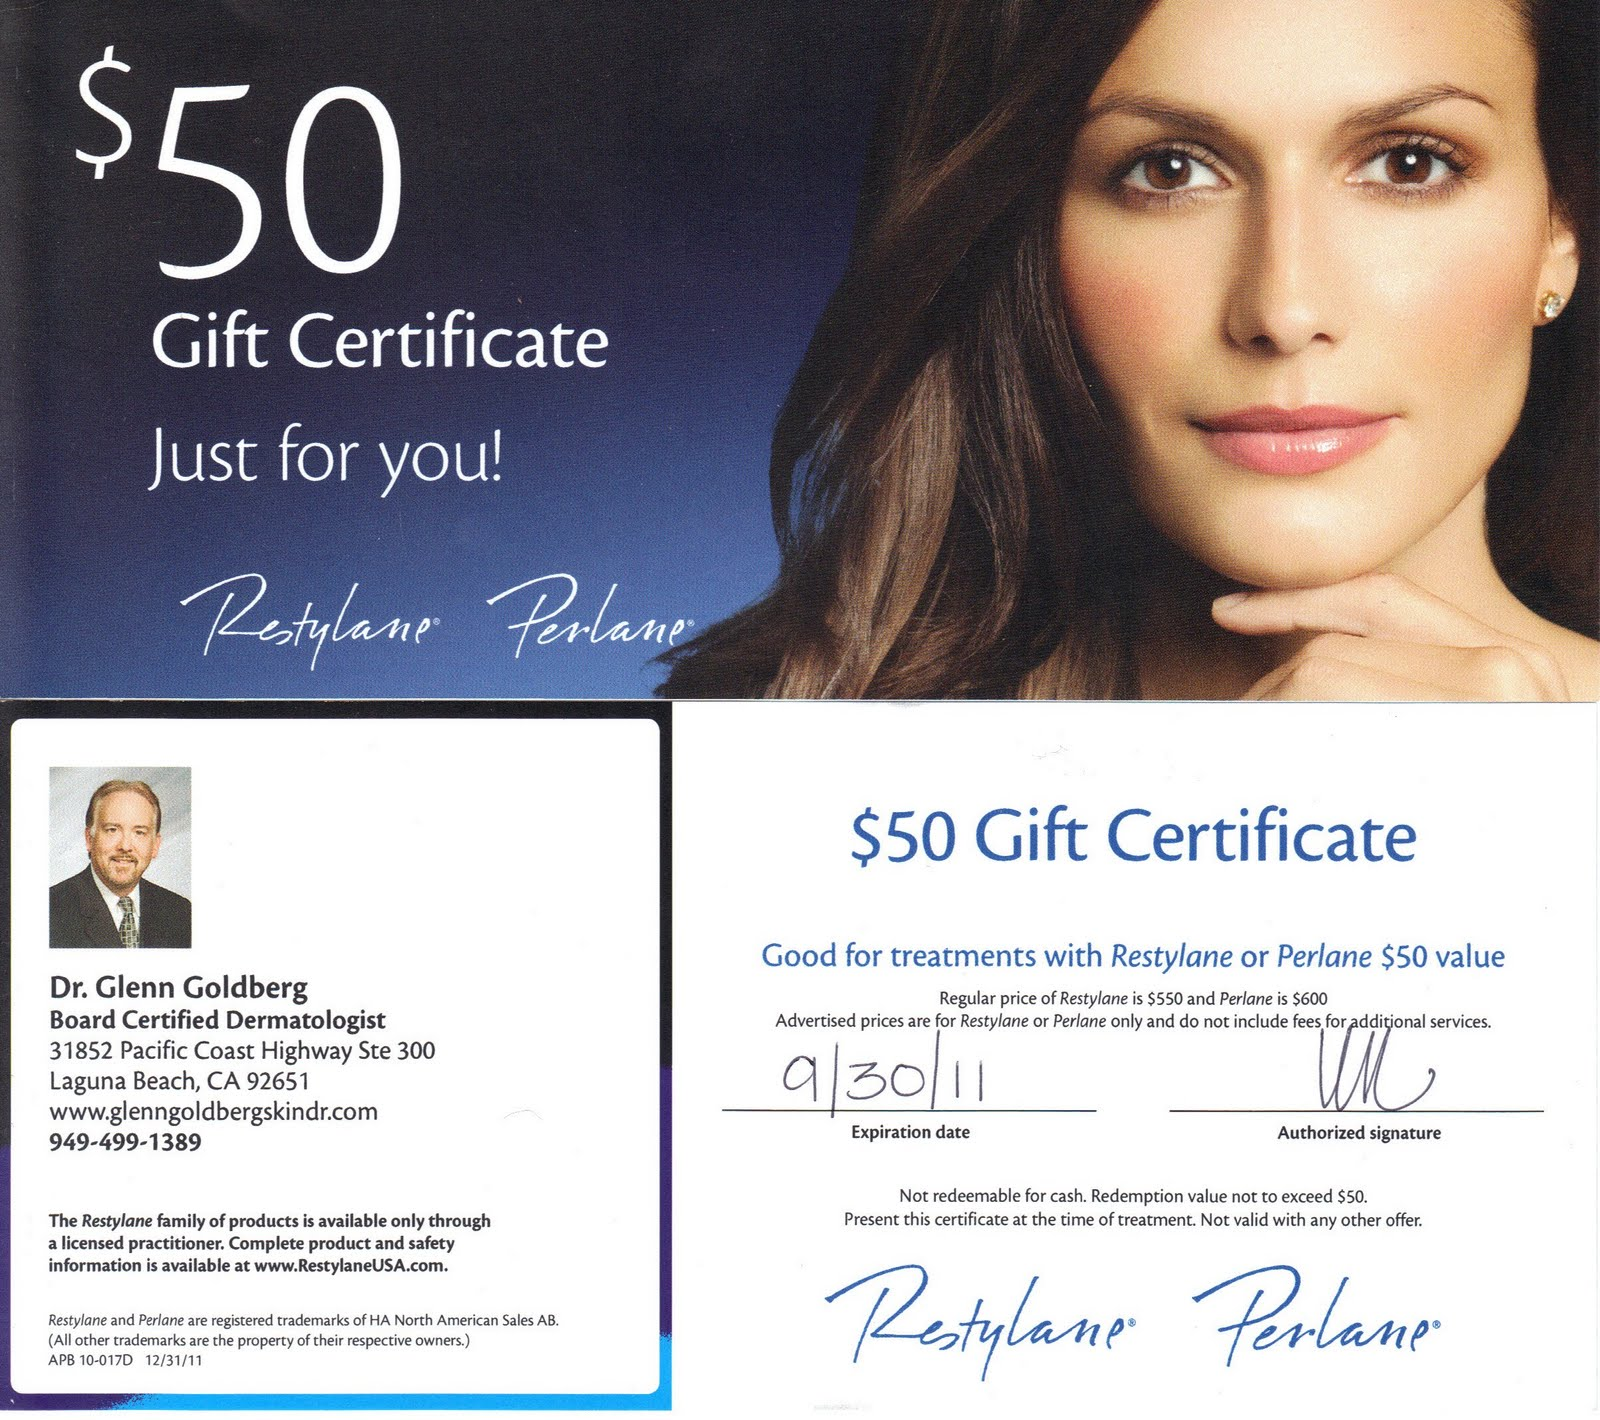 Restylane coupon offers